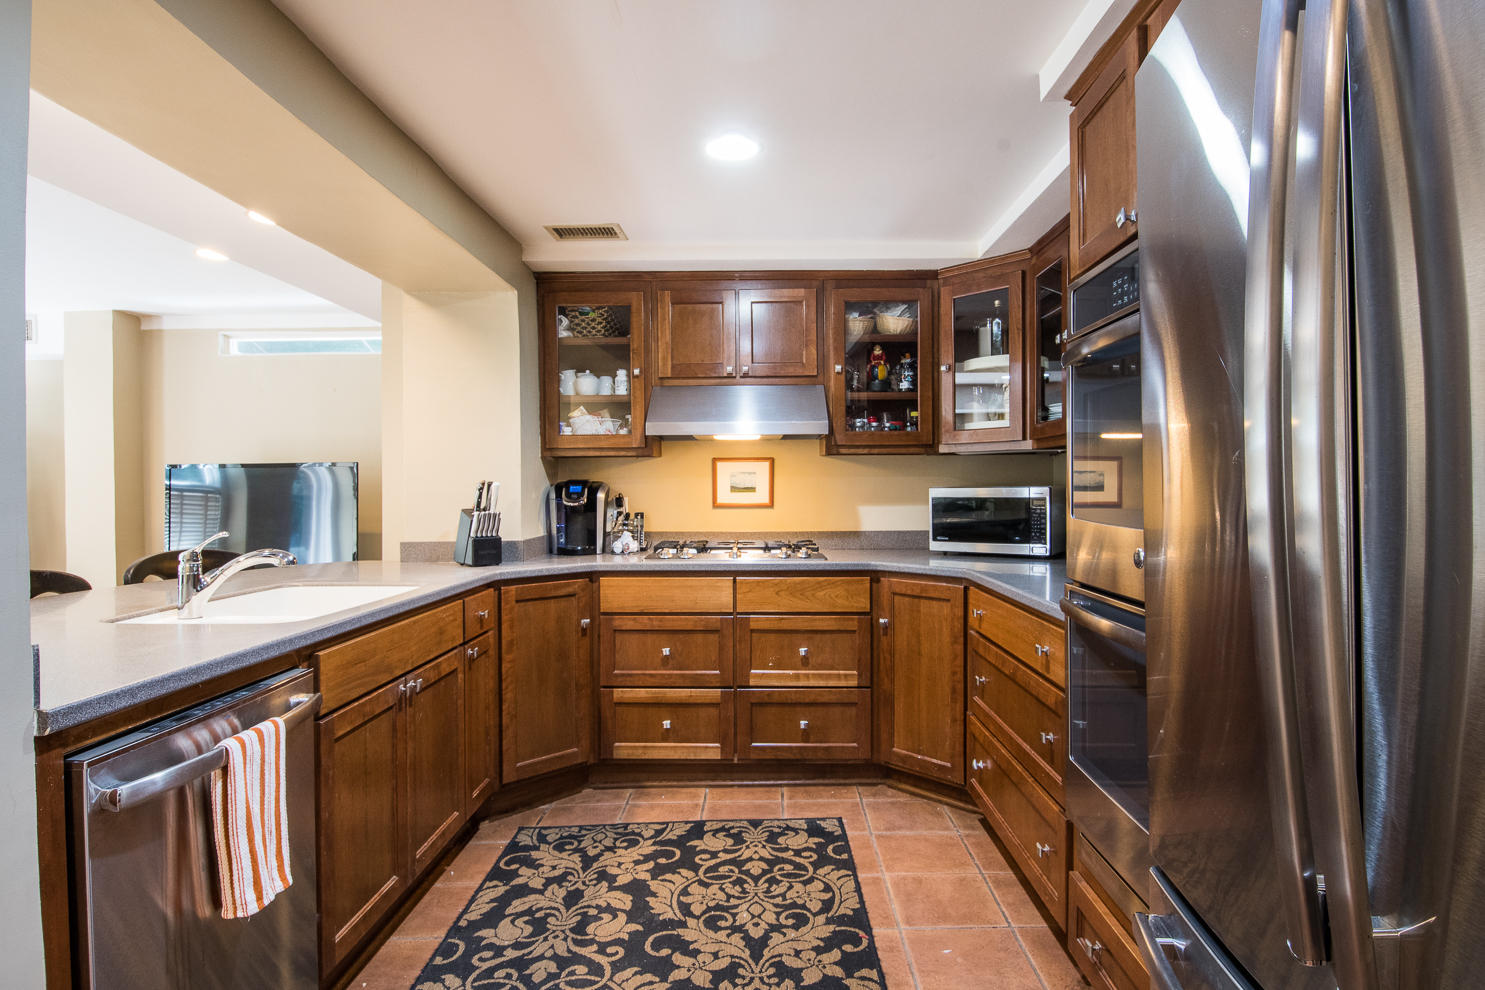 South of Broad Homes For Sale - 1 Prices, Charleston, SC - 50